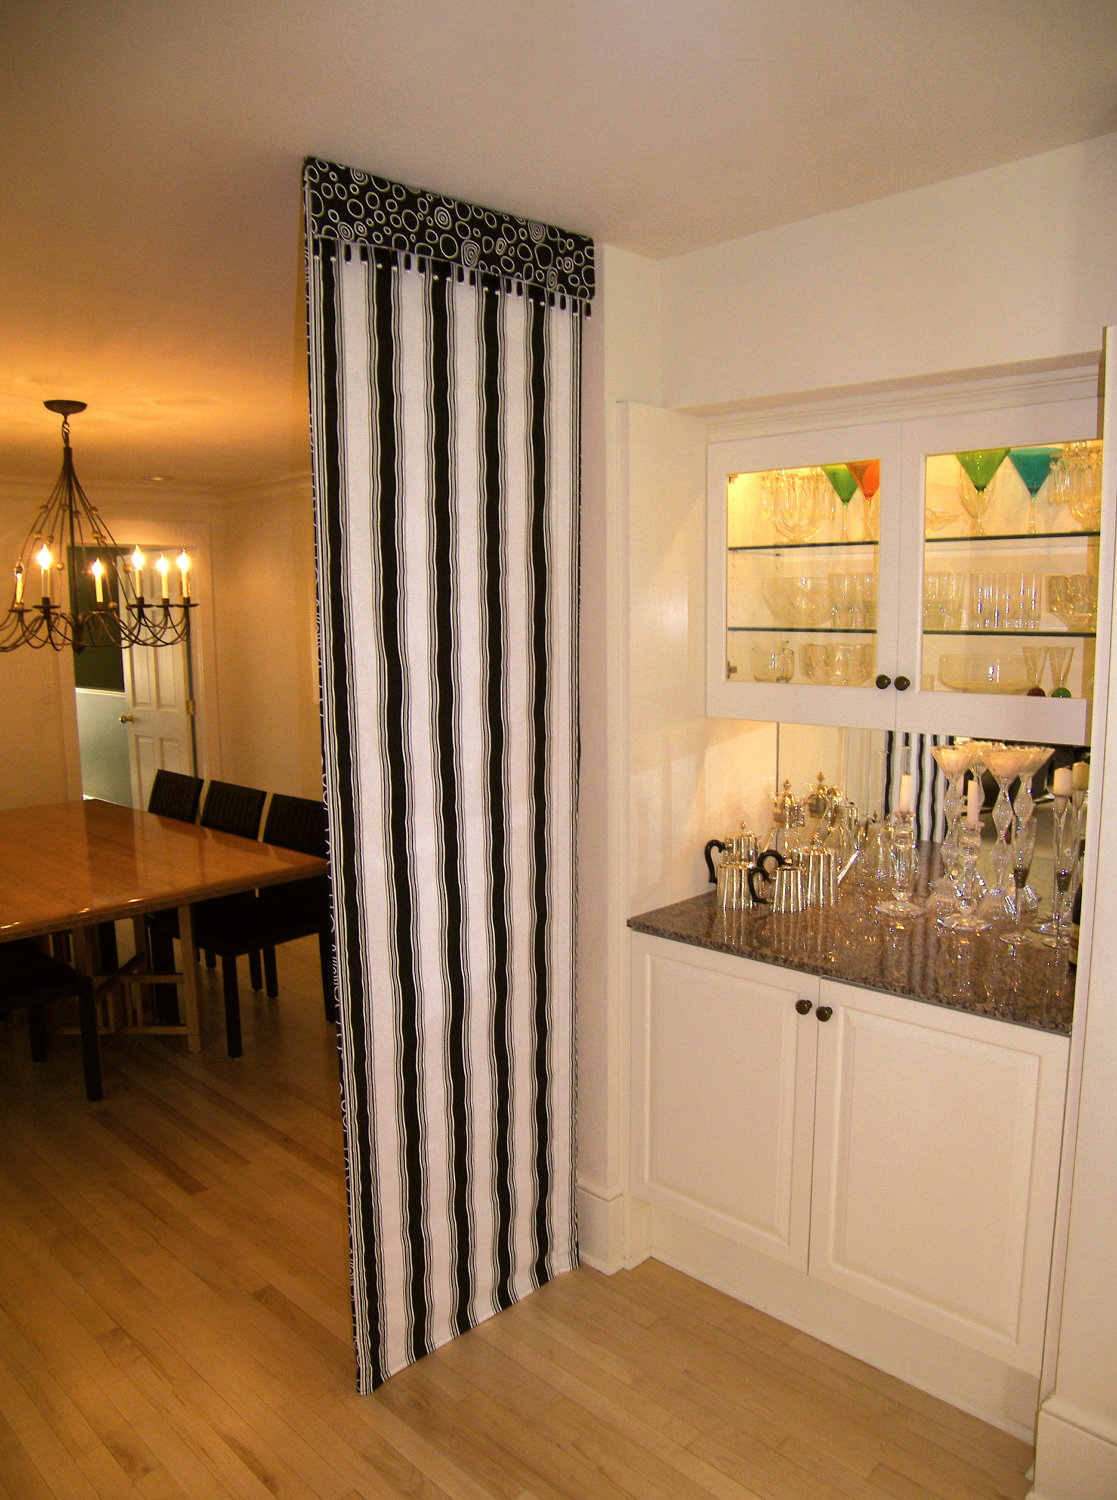 Delightful Simple Room Divider Idea Design In Dining Room Madeof Stripe Patterned  Black And White Curtain And Part 25